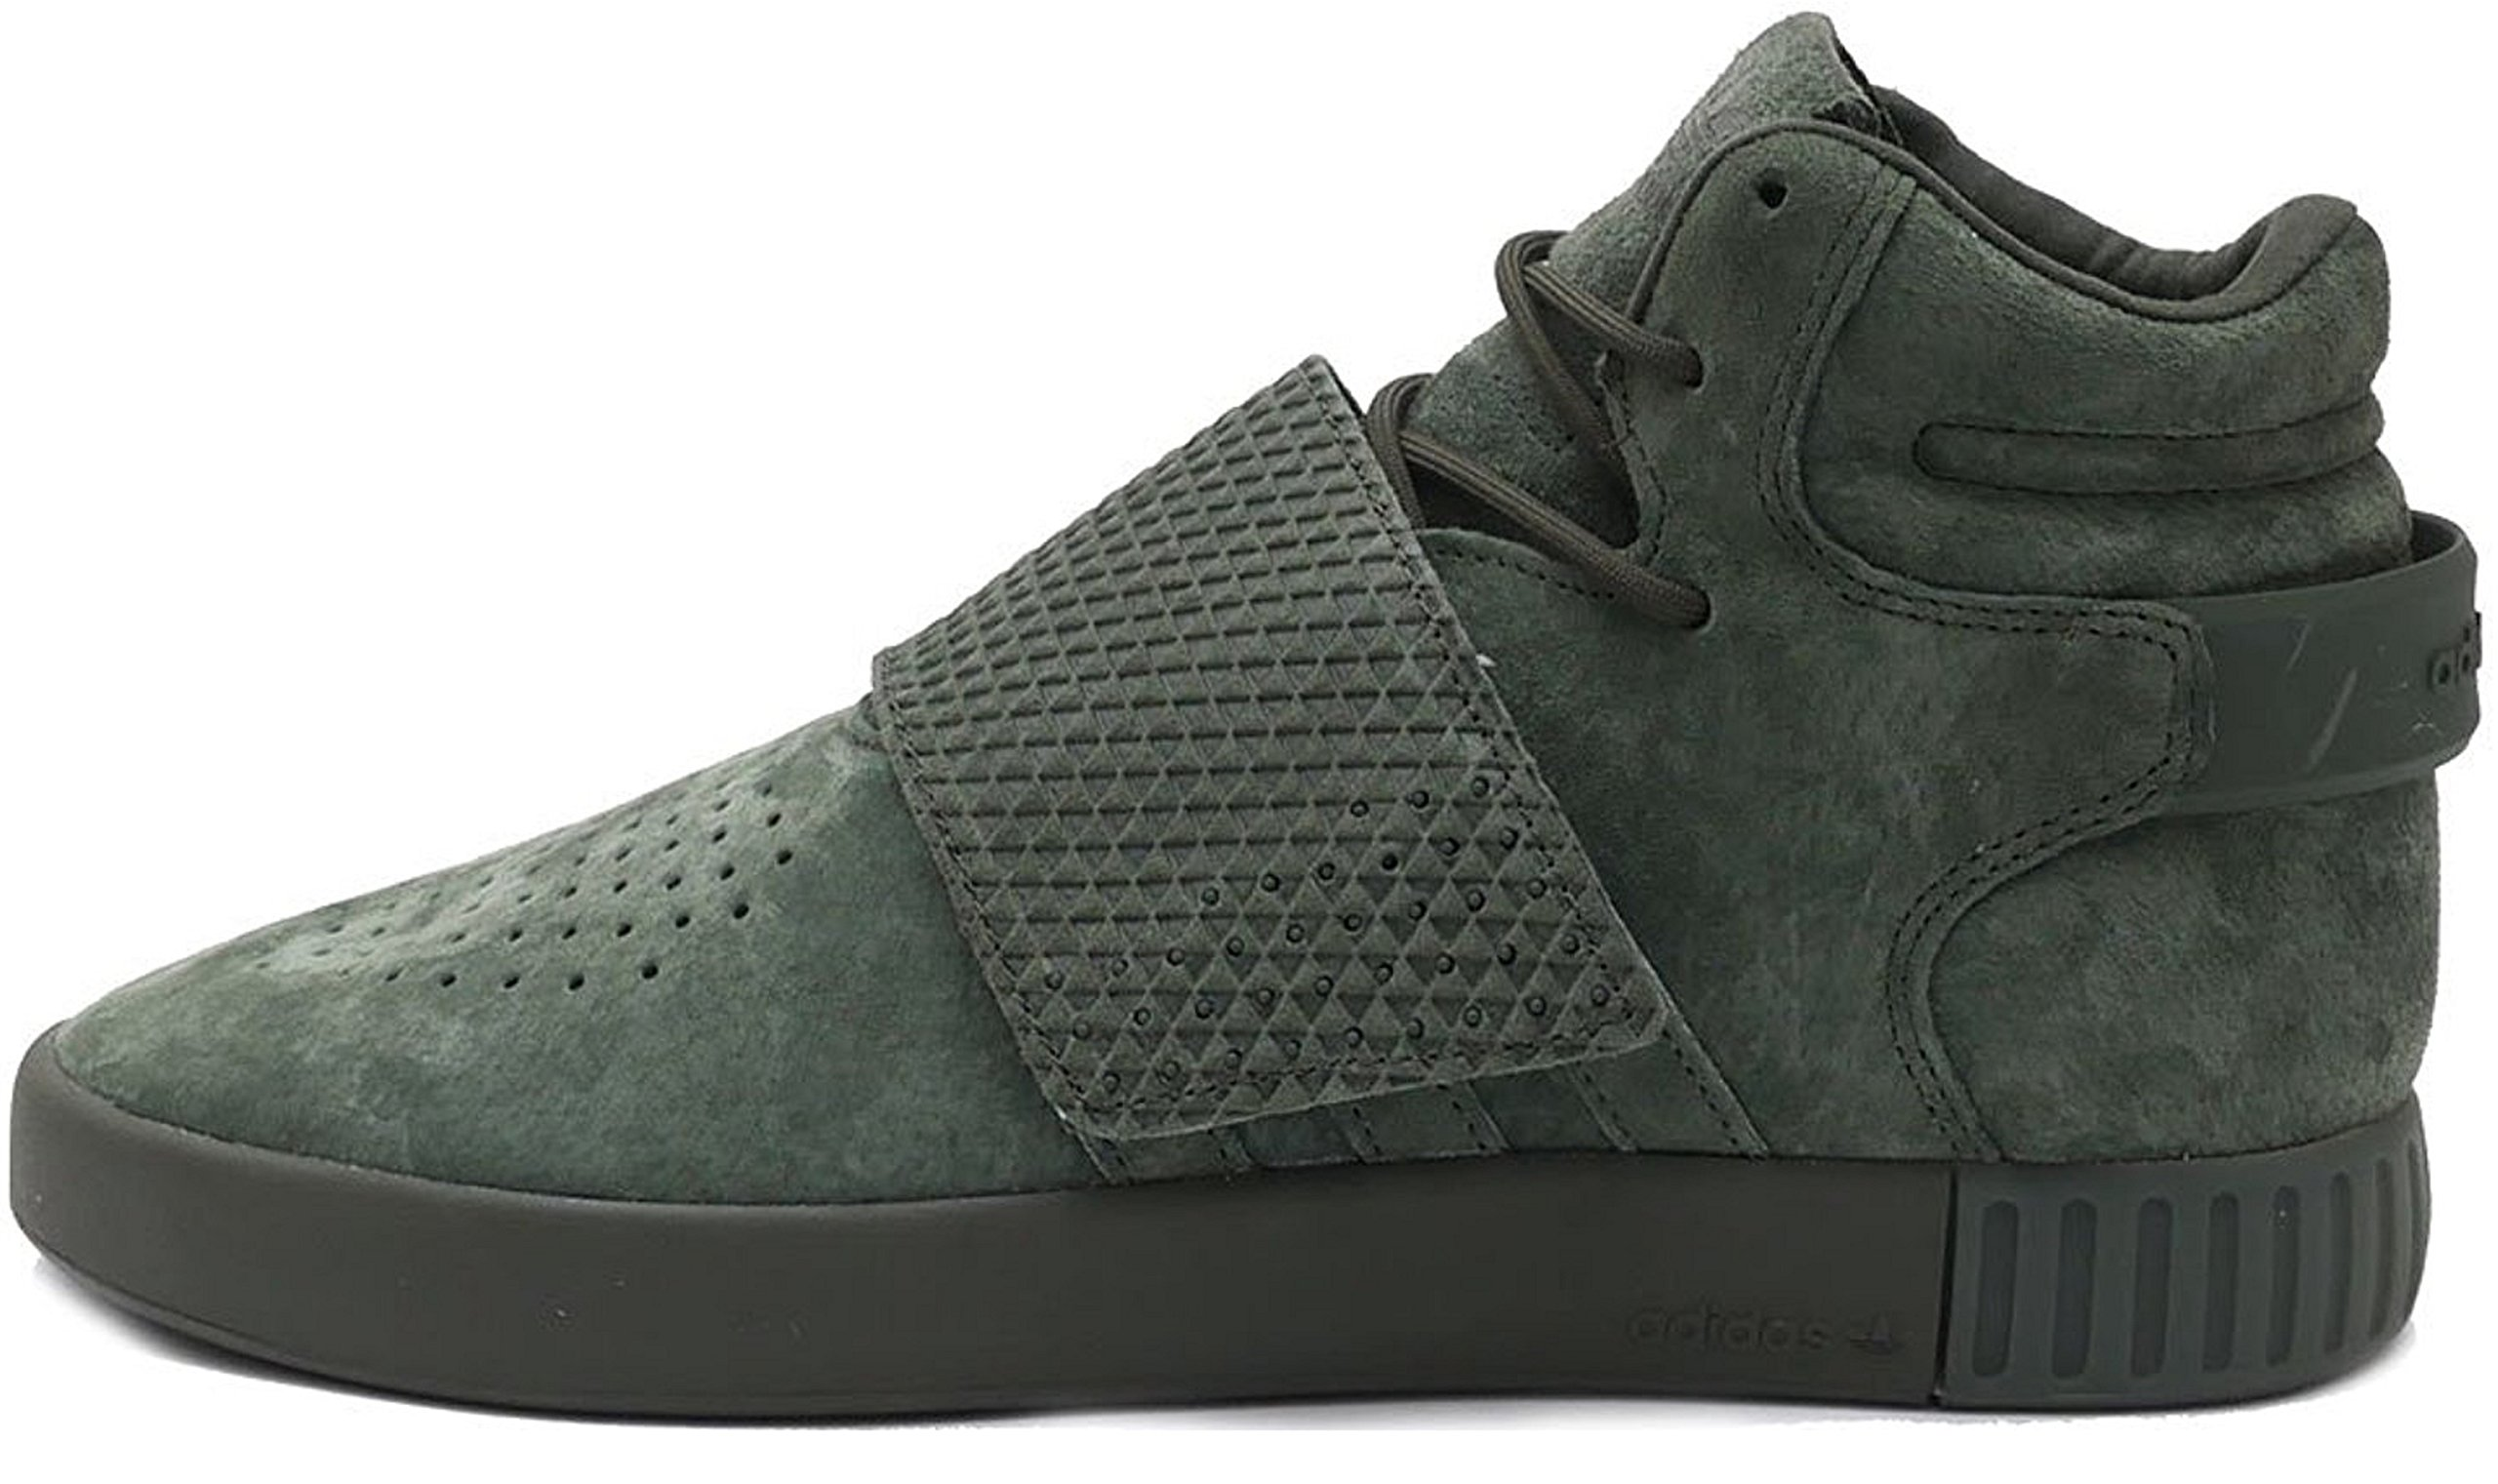 new style 3824f d4103 adidas Originals Men's Shoes | Tubular Invader Strap Fashion Sneakers,Night  Cargo/Night Cargo/Night Cargo, (9.5 M US)